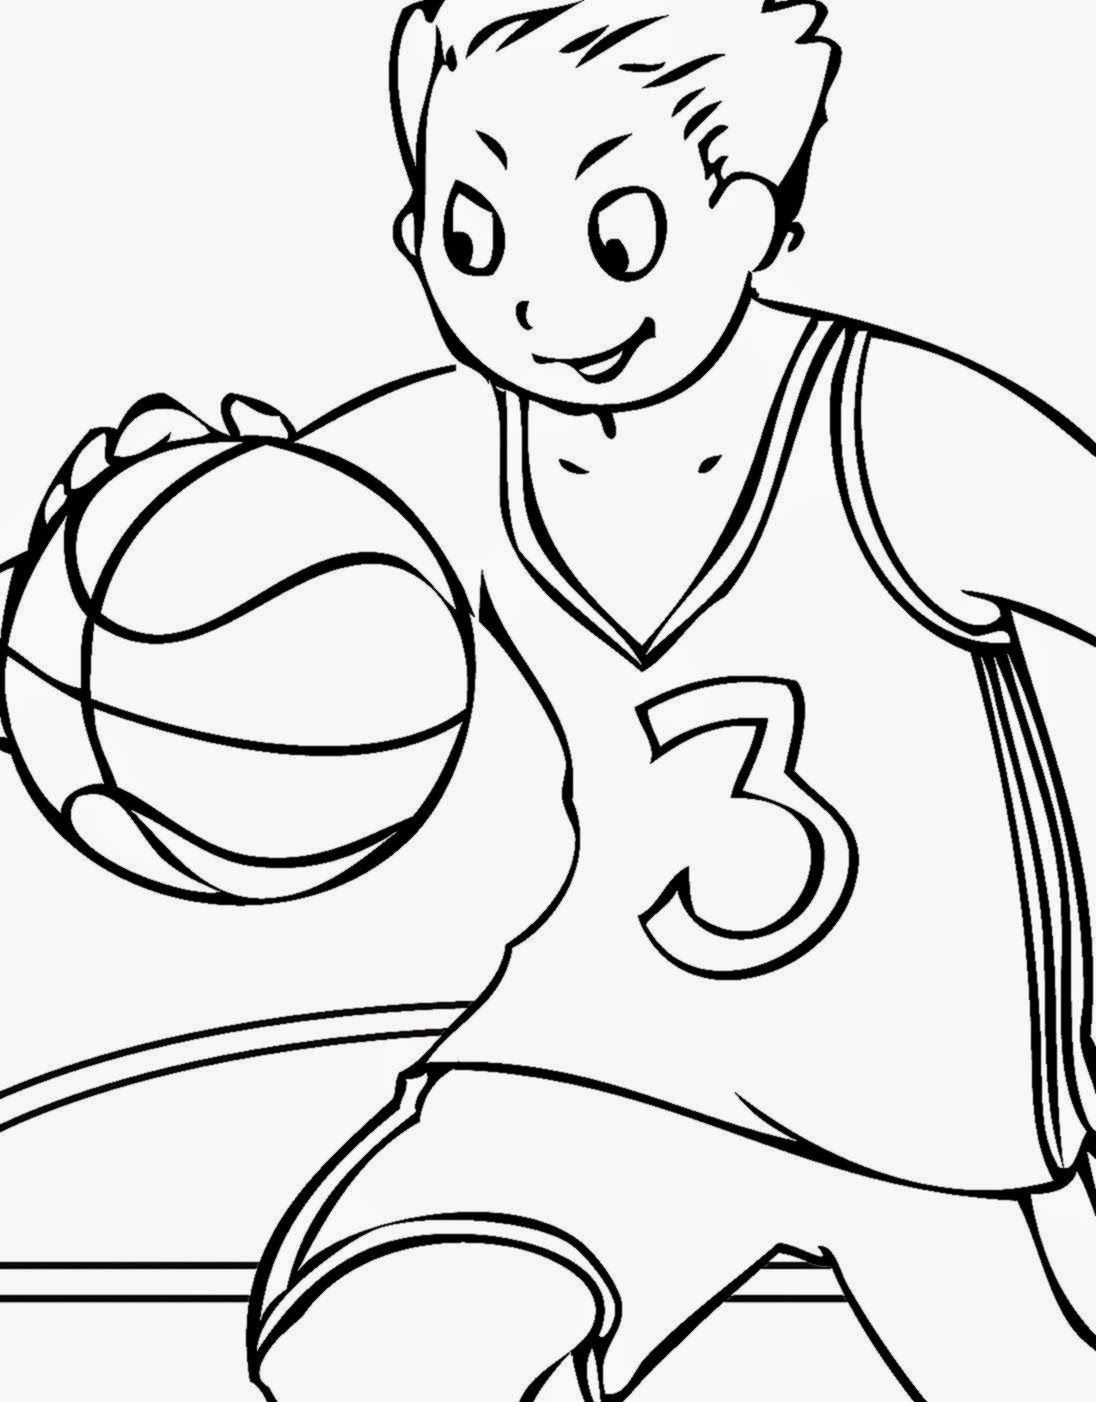 basketball pictures to color mandala easy basketball coloring pages printable basketball to pictures color